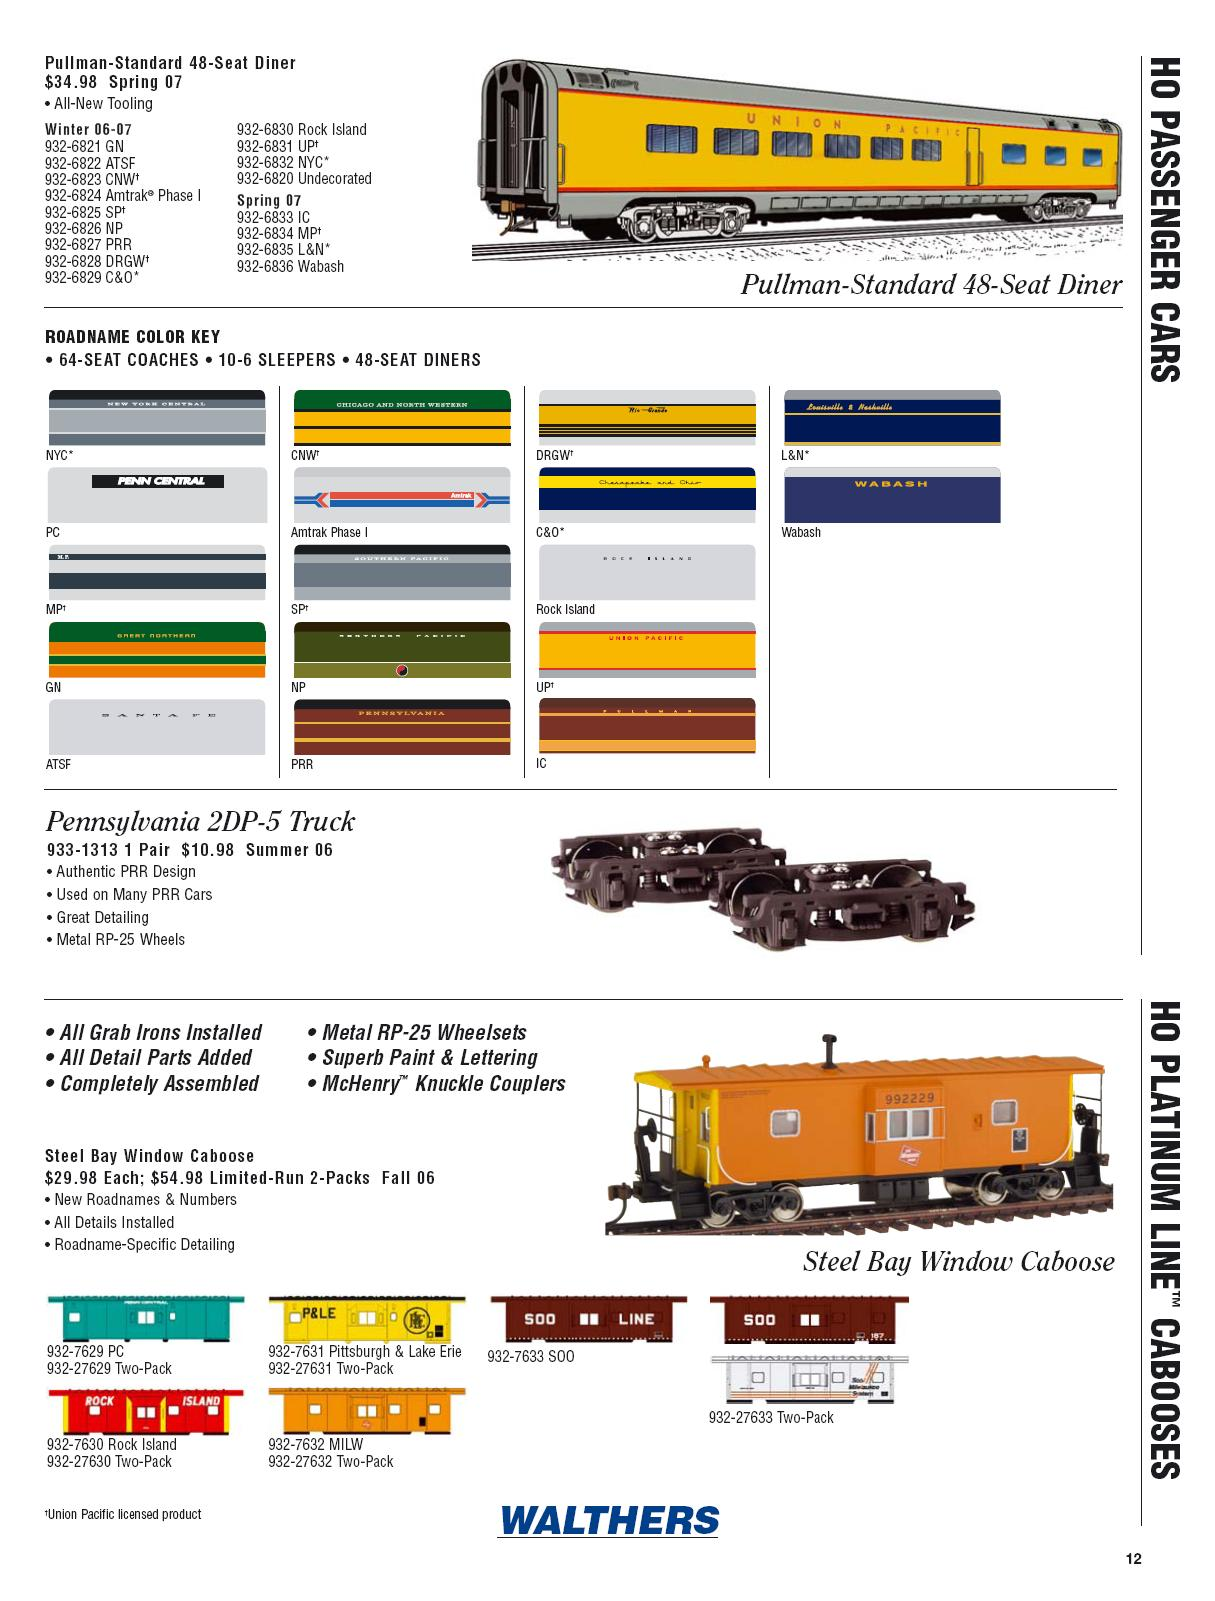 Walthers 2006 Cataloge Passenger page 4